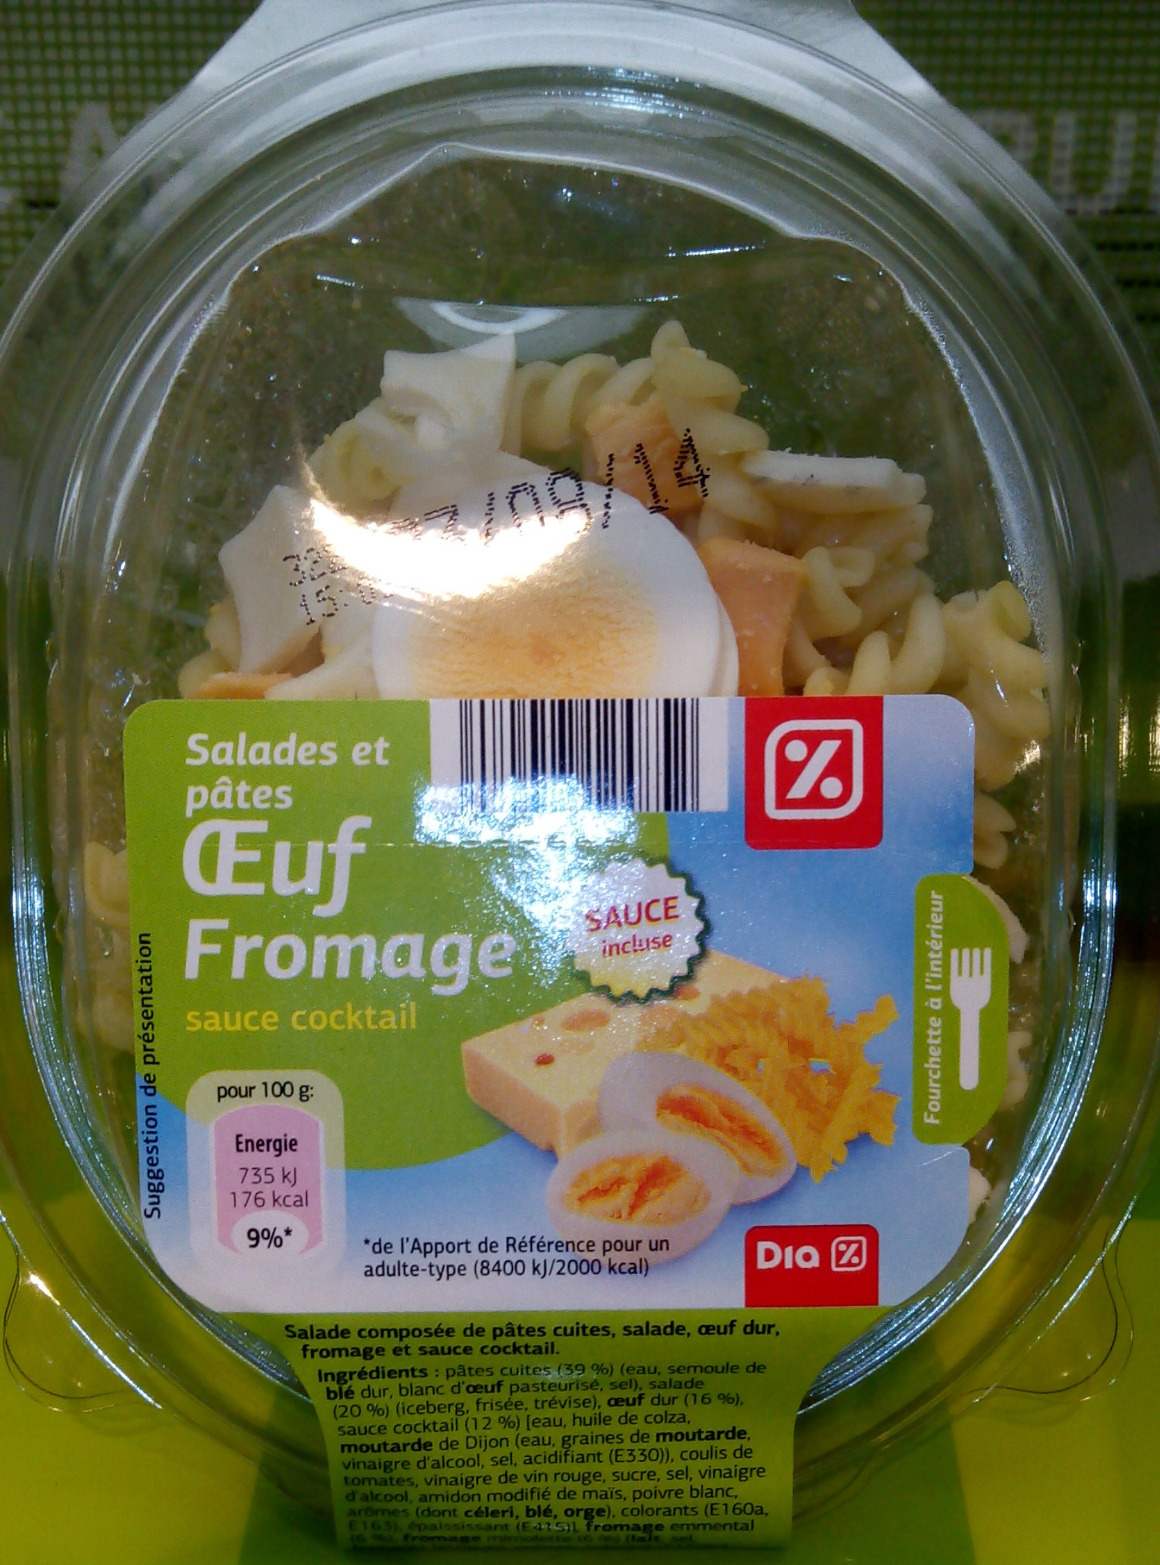 Salades et pâtes oeuf fromage - Product